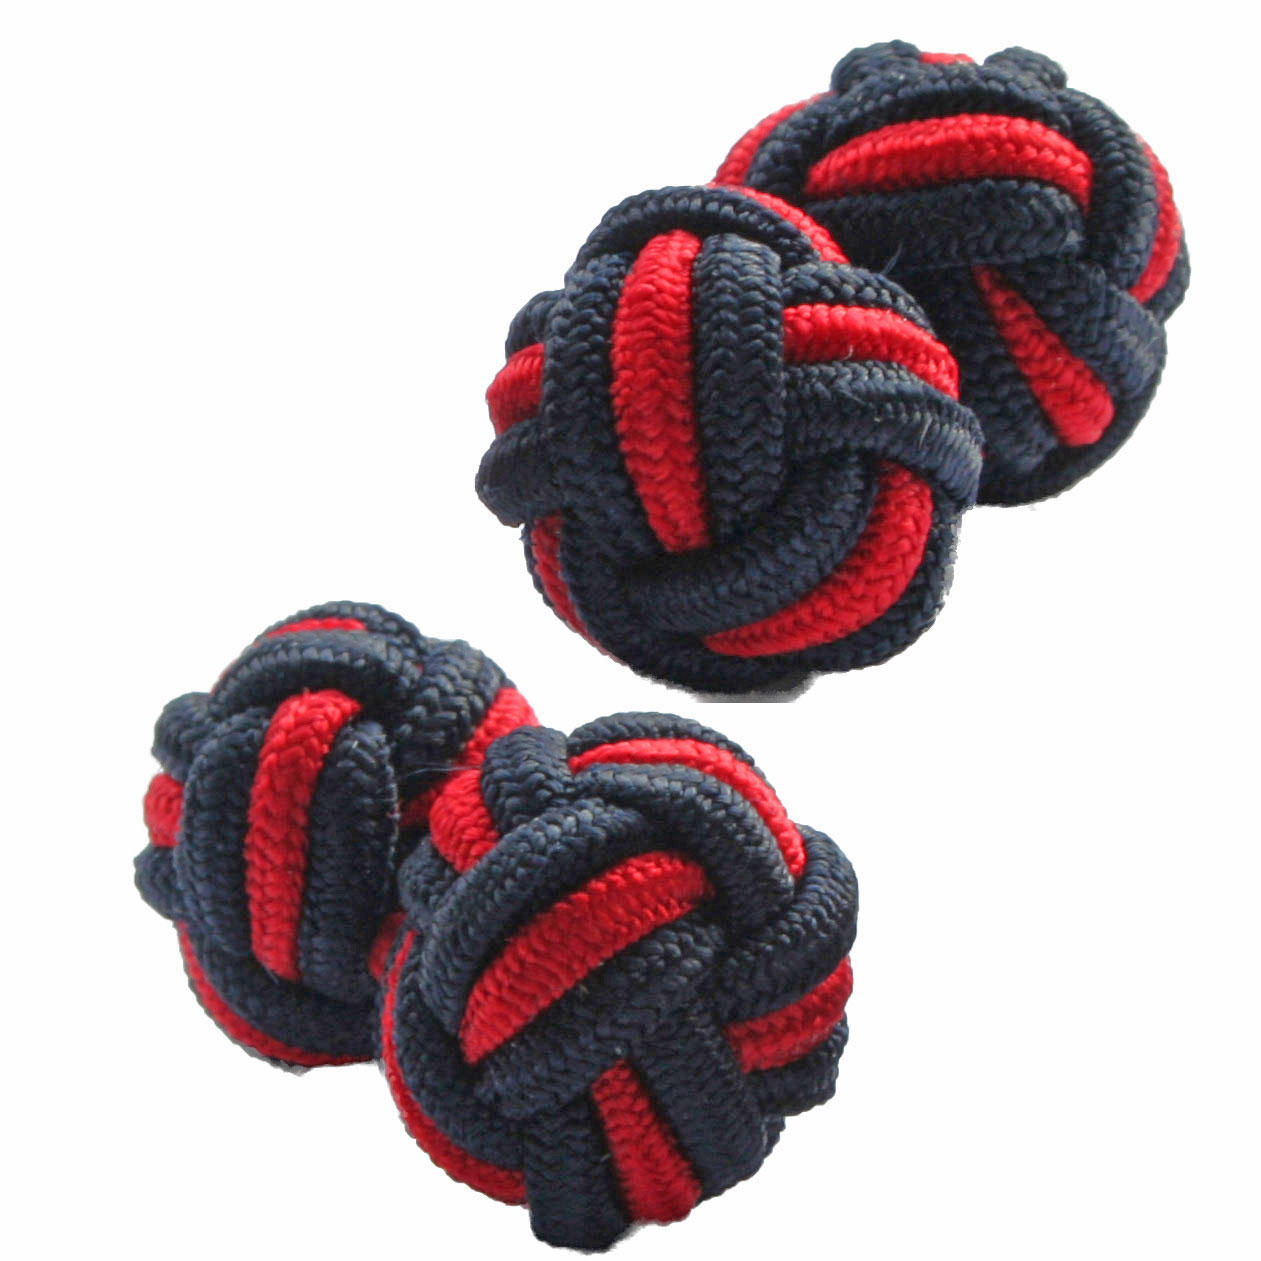 Black and Red Silk Knot Cufflinks from Cuffs & Co